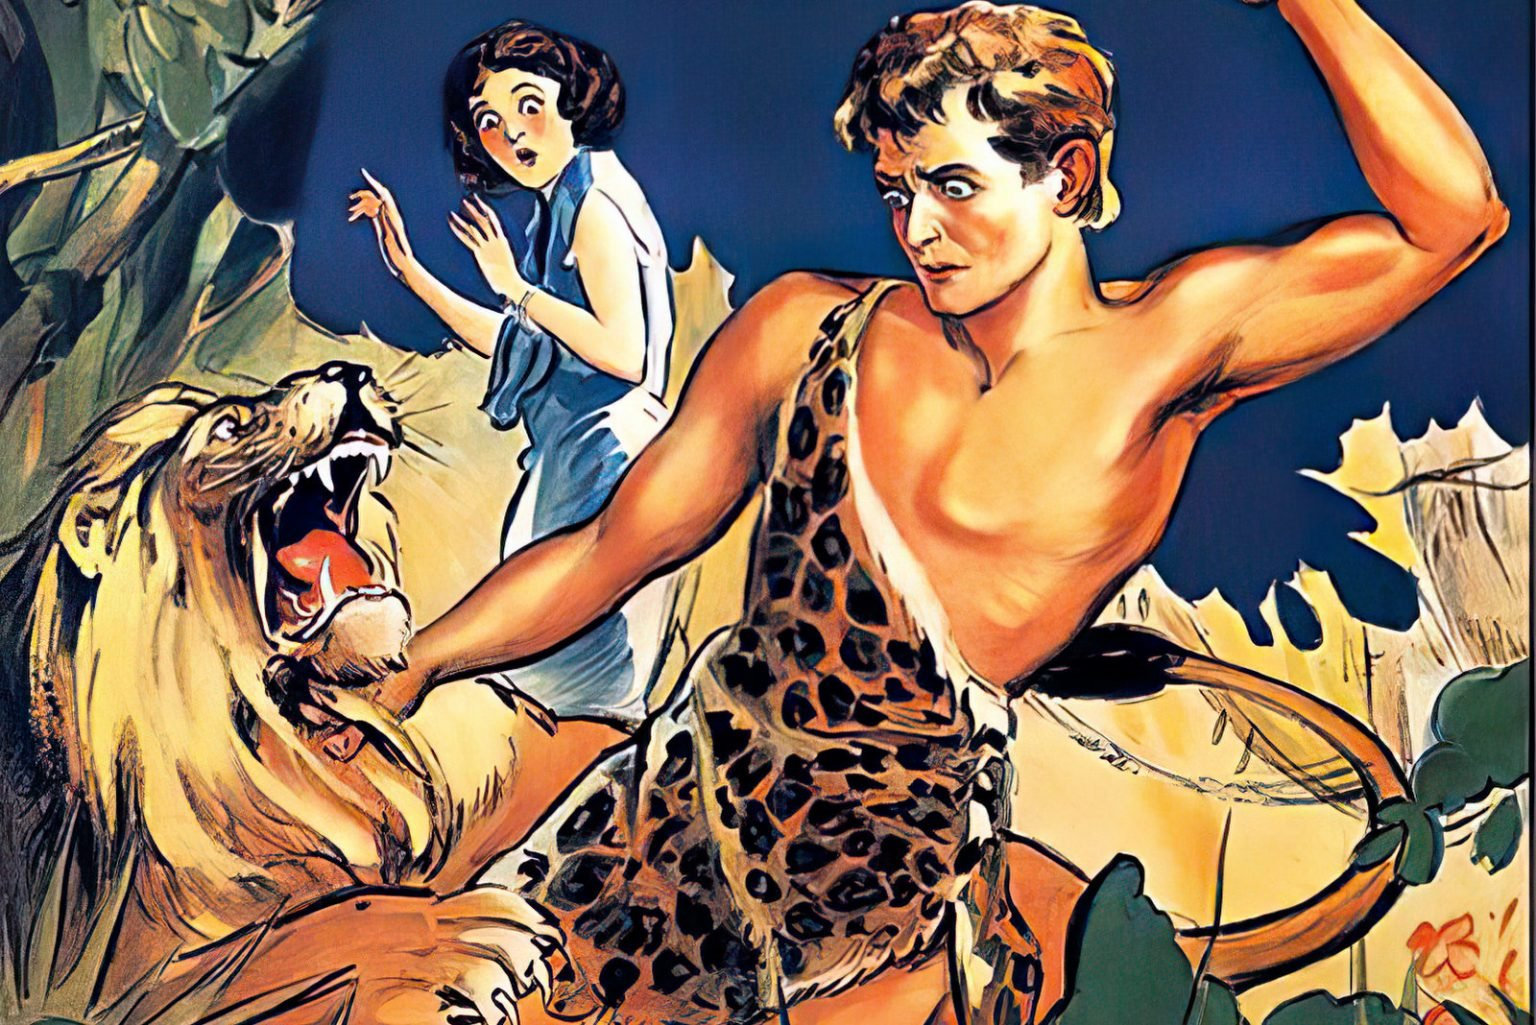 Vintage actors starring as Tarzan for first half of 20th century